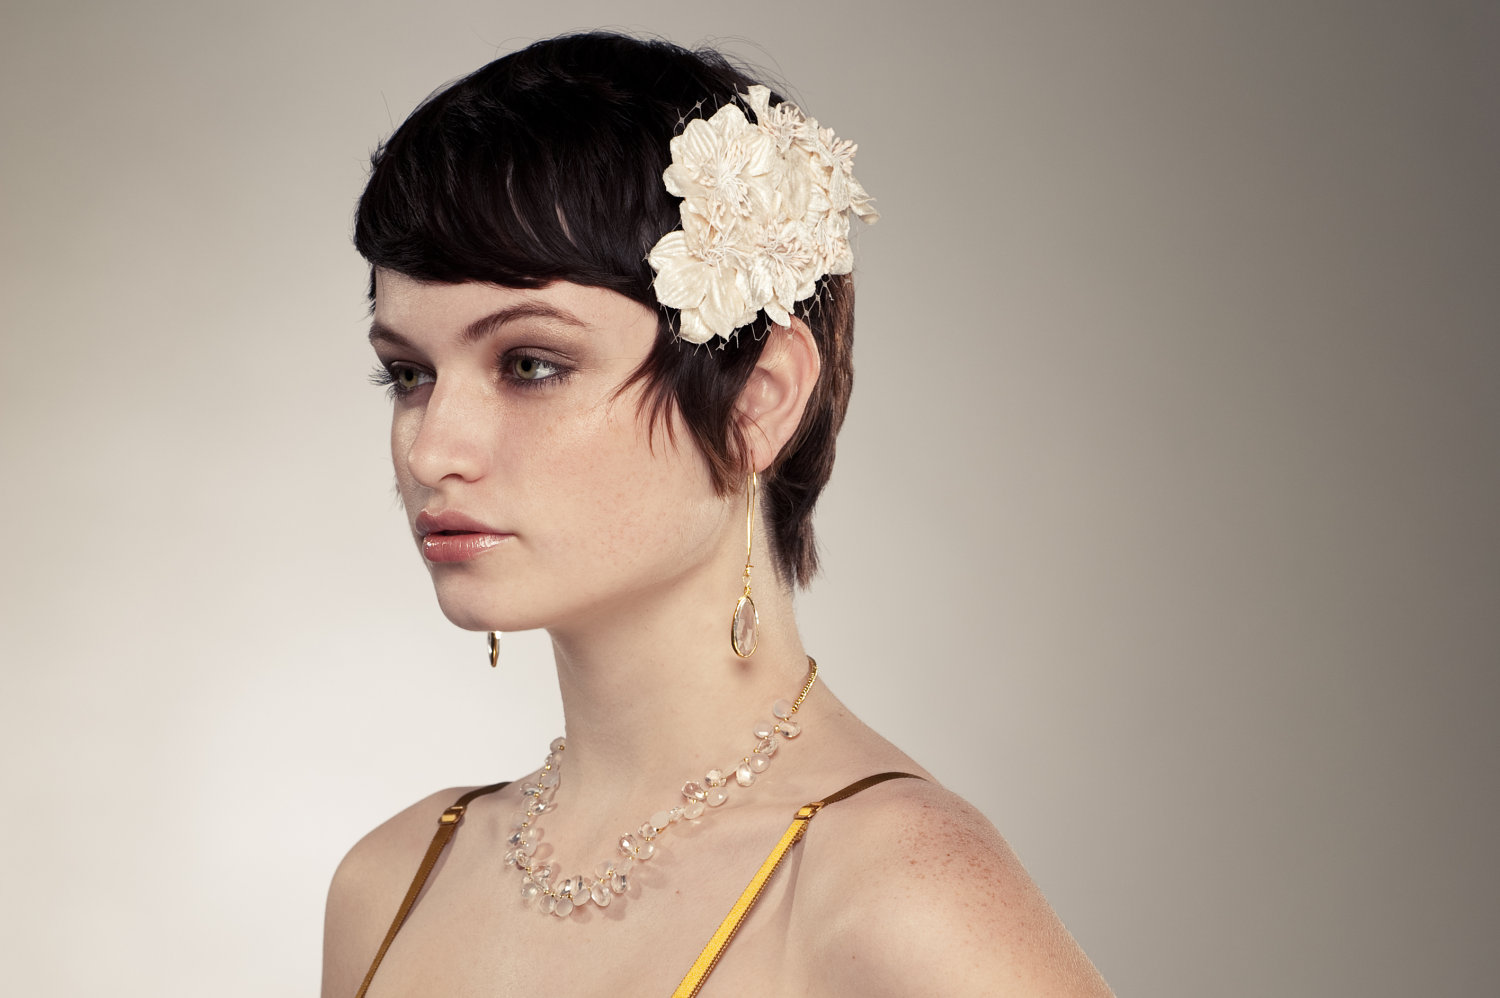 Vintage-inspired-wedding-hair-accessory-ivory-flower-with-net.original